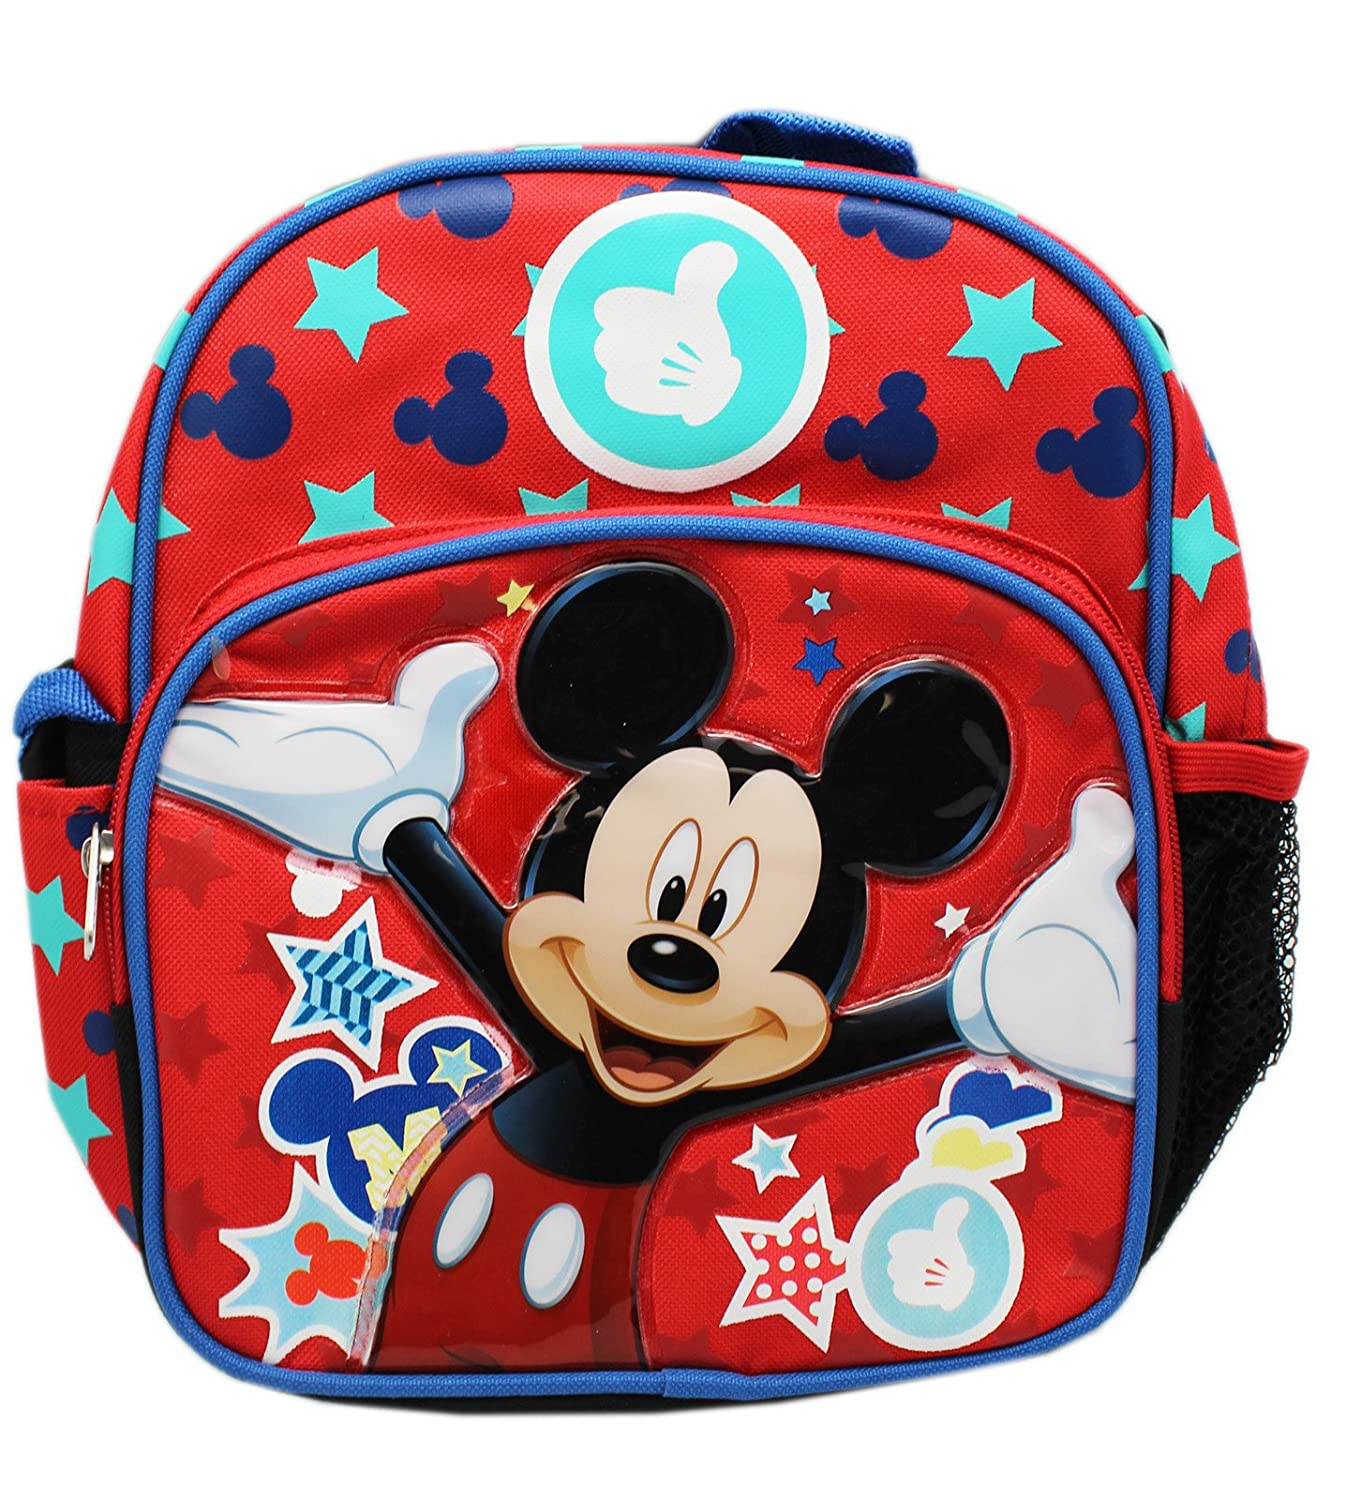 Disney Mickey Mouse and Friends Kids Backpack